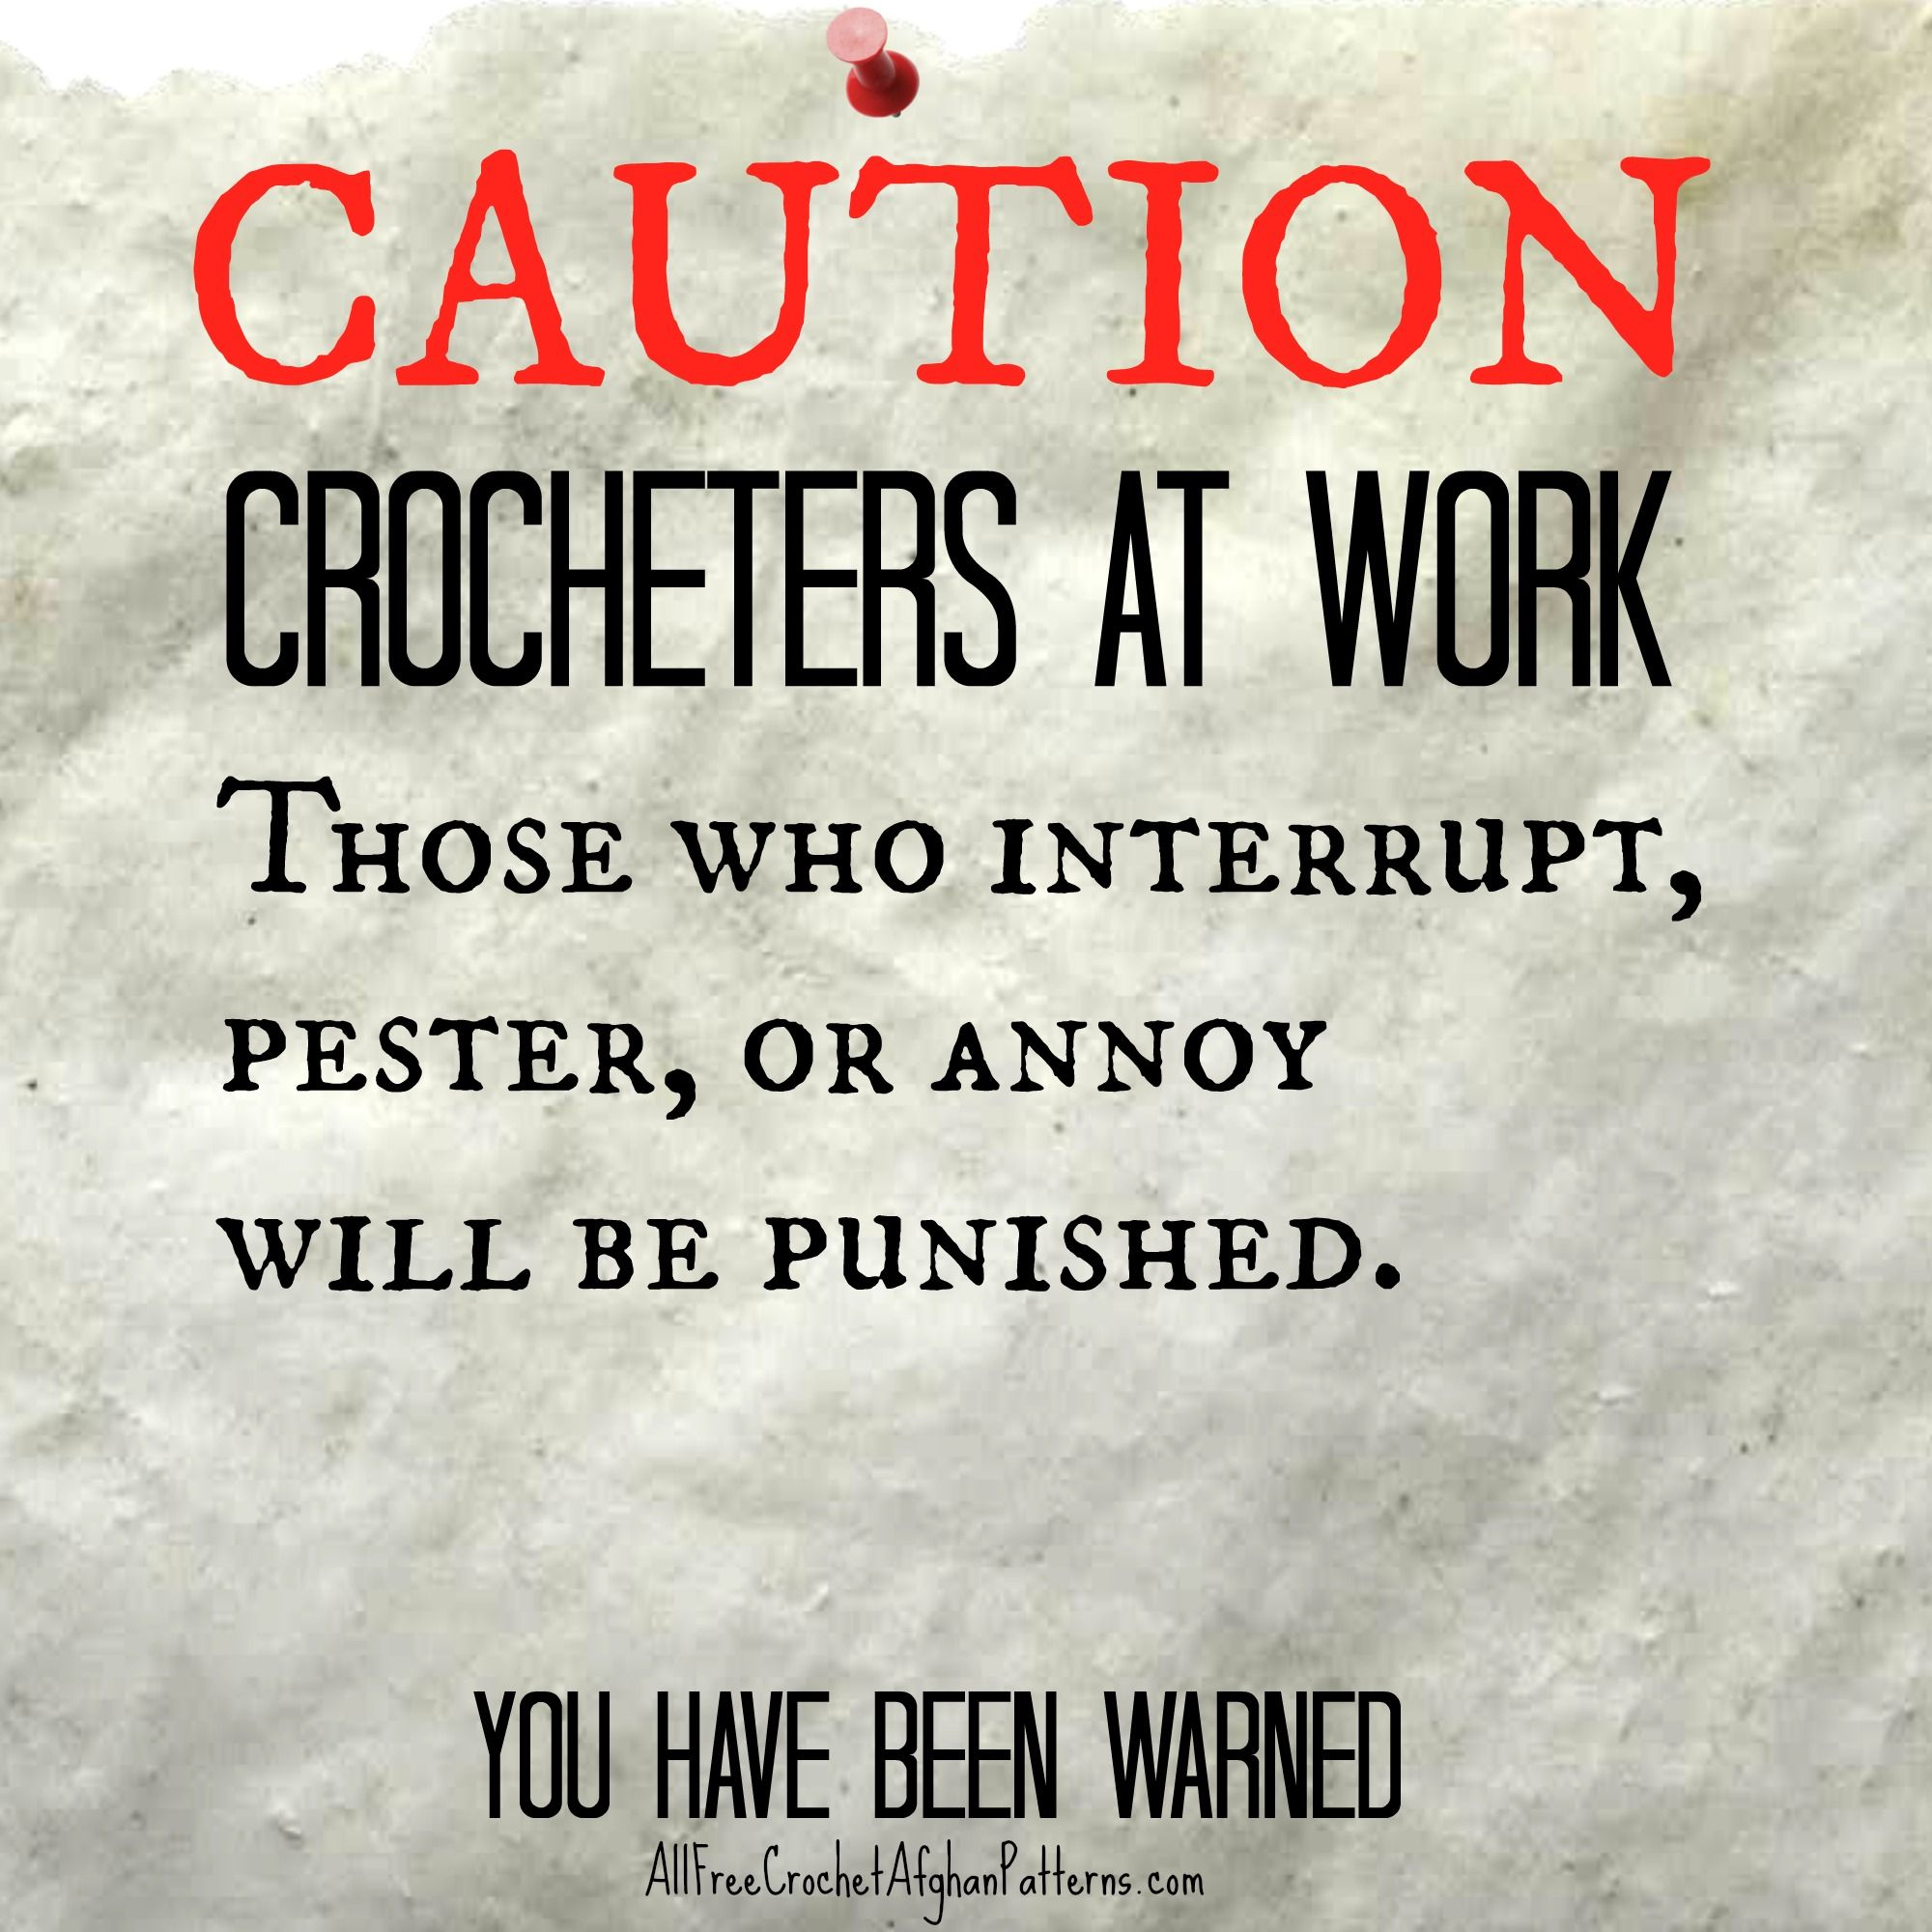 Hehe...CAUTION CROCHETERS AT WORK. Don't mind me, I'll be crochet all weekend!